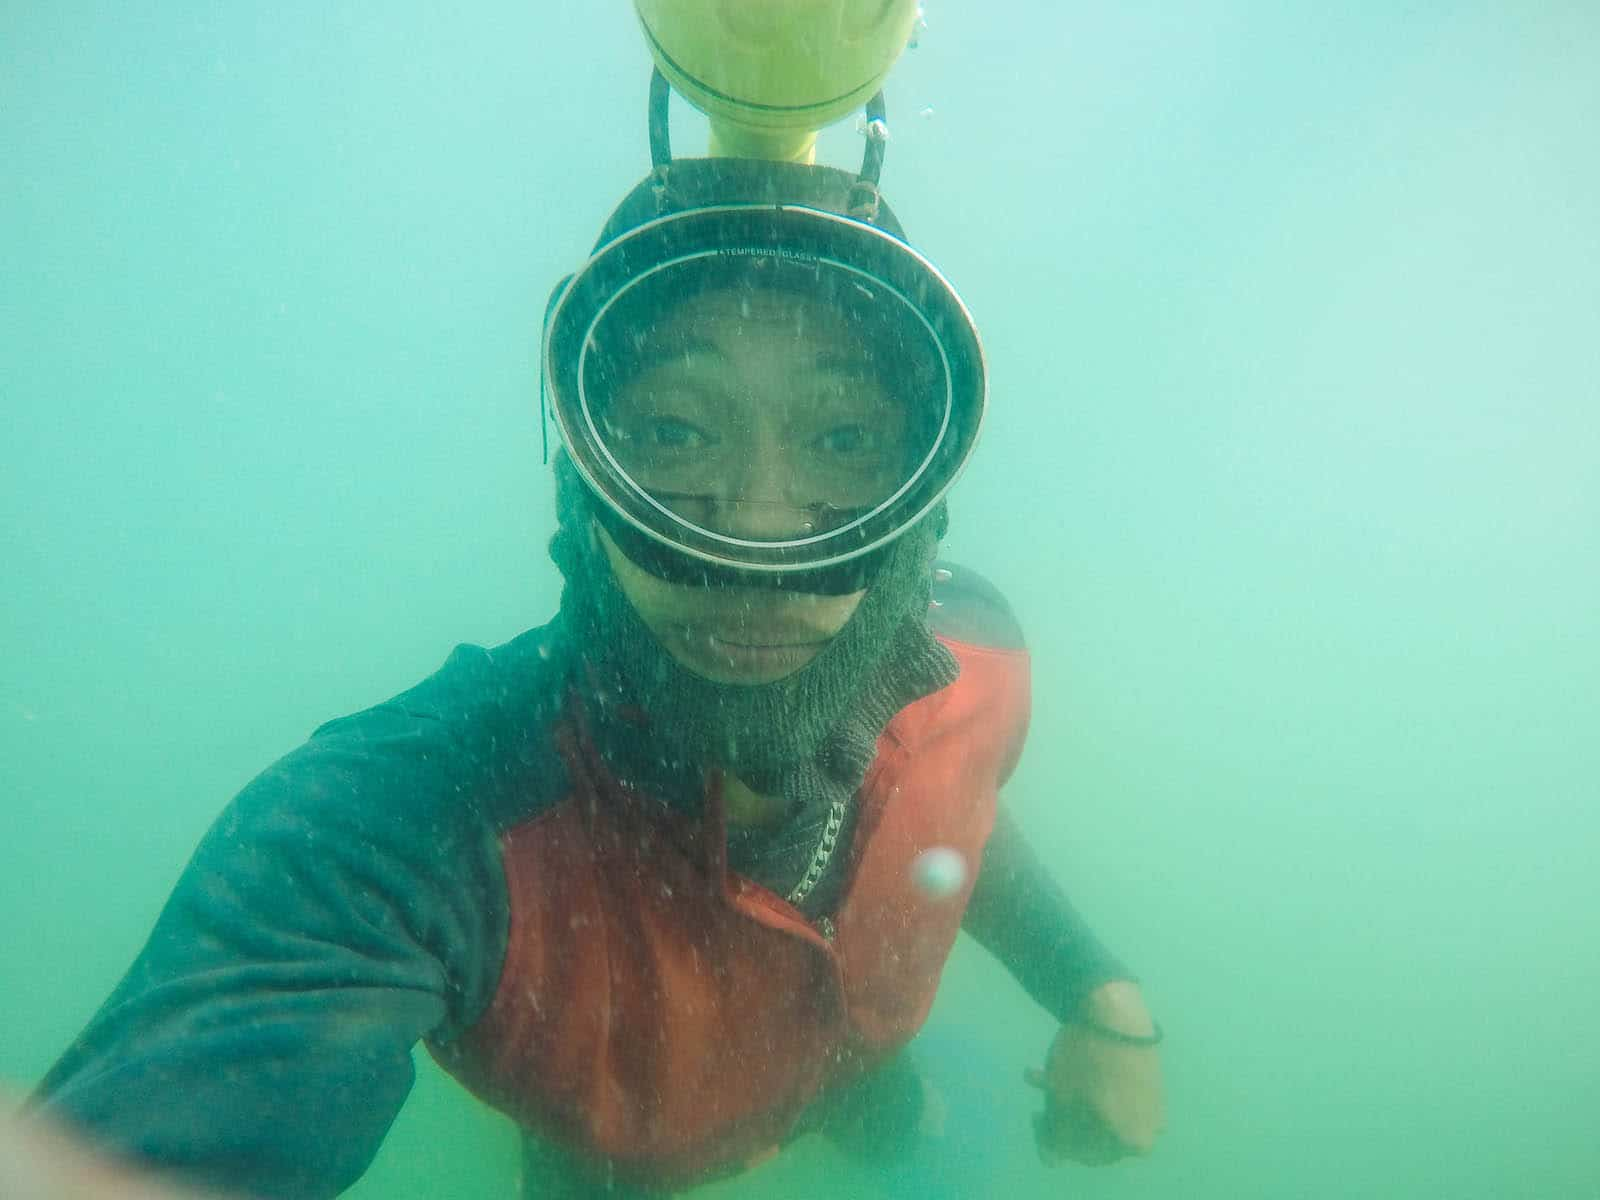 A man underwater, wearing a swim mask and a flashlight strapped to his head.